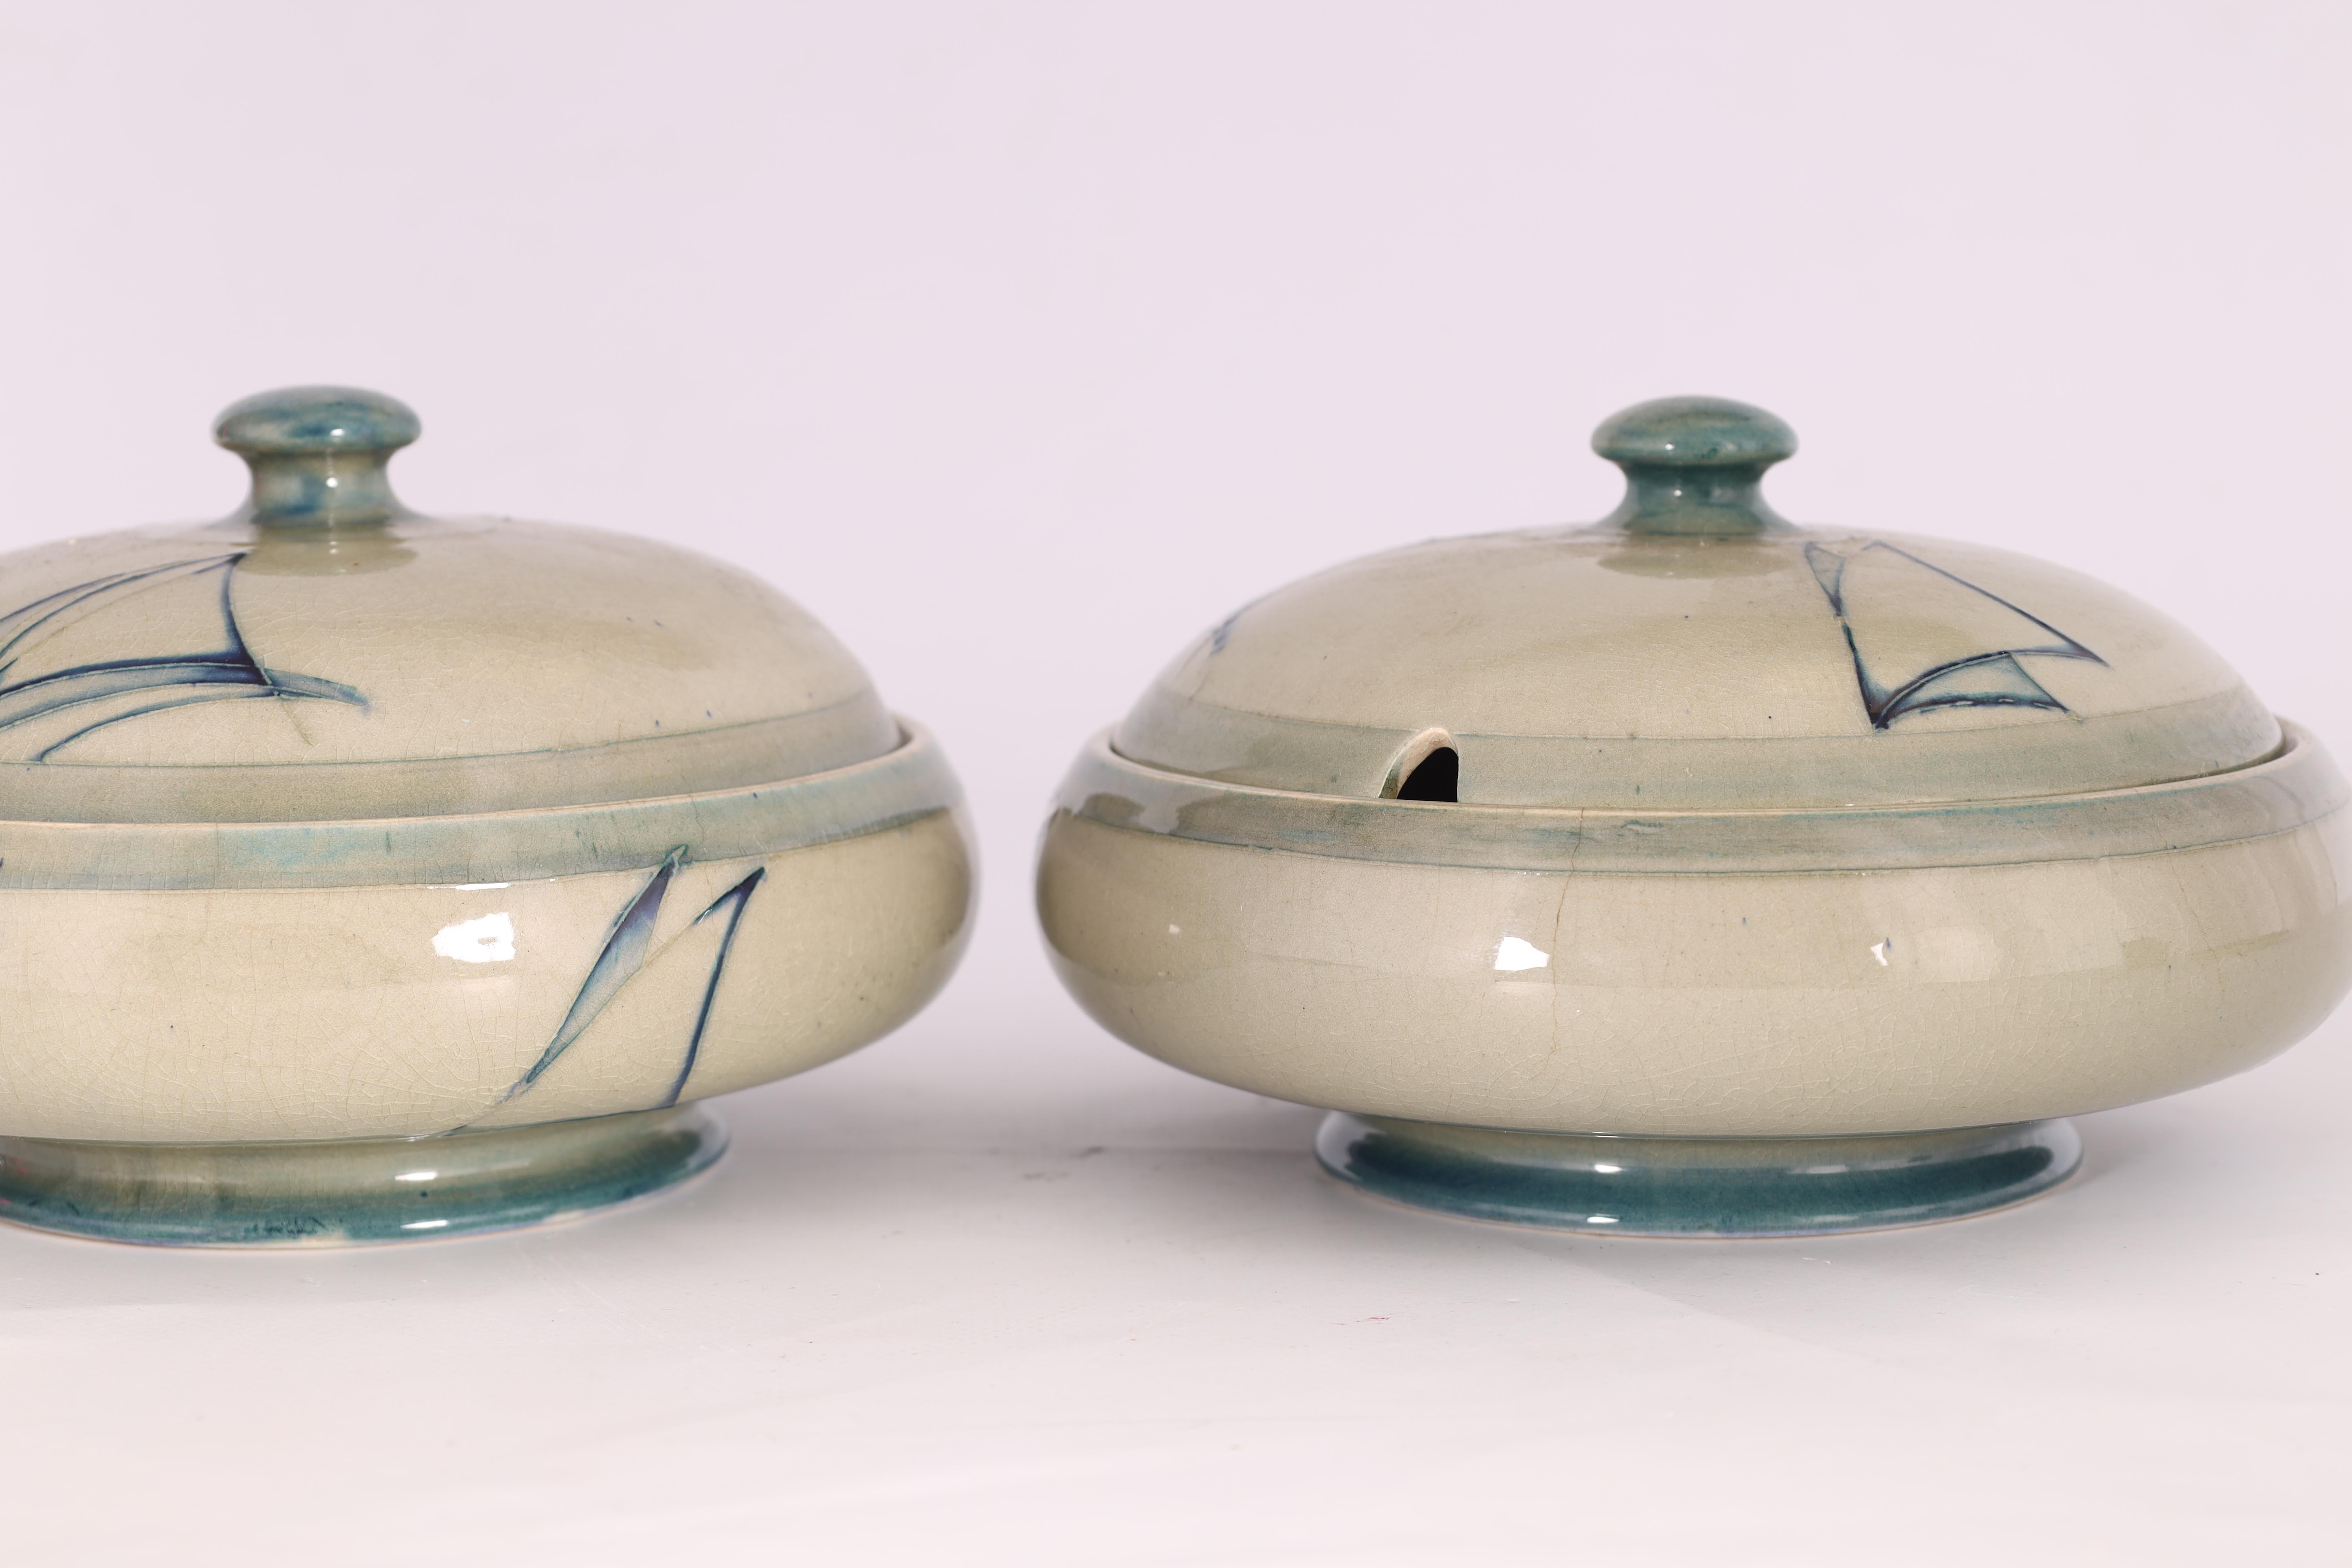 A PAIR OF MOORCROFT LIDDED TABLE TUREENS decorated in the Yacht pattern on a celadon ground, 19. - Image 5 of 12